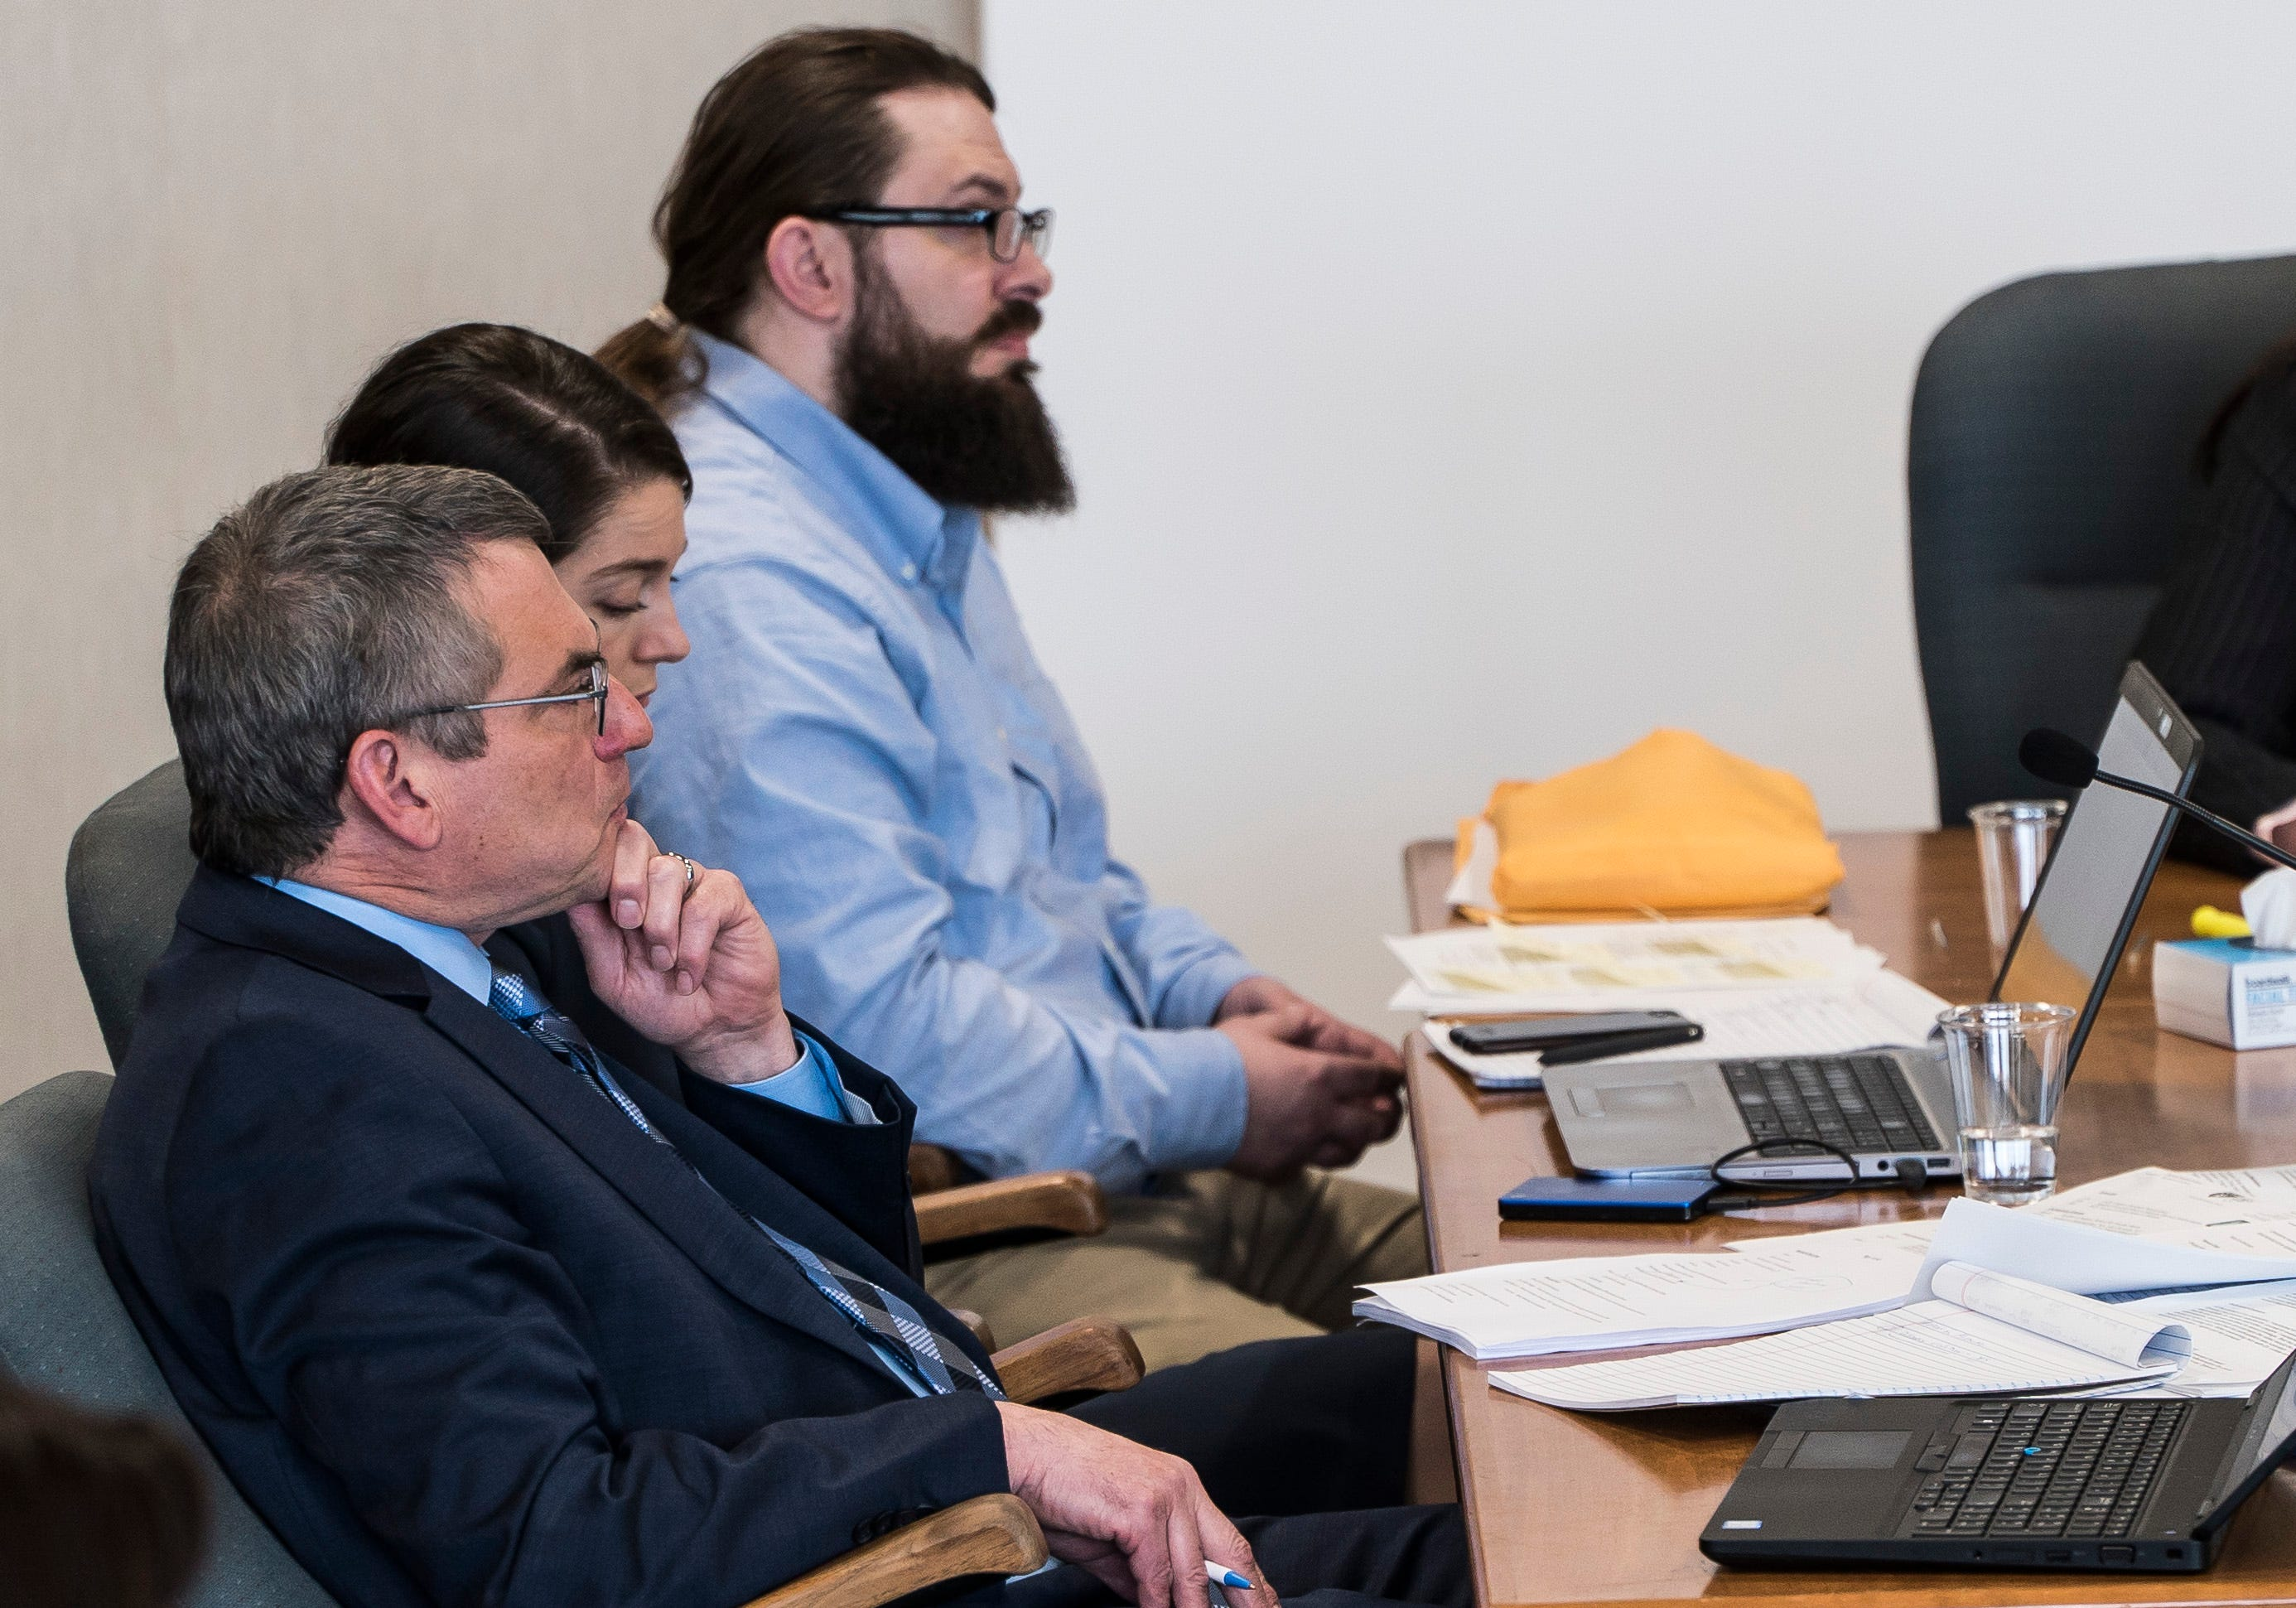 Steven Bourgoin visited the UVM Medical Center hours before a fatal crash. This is what happened.